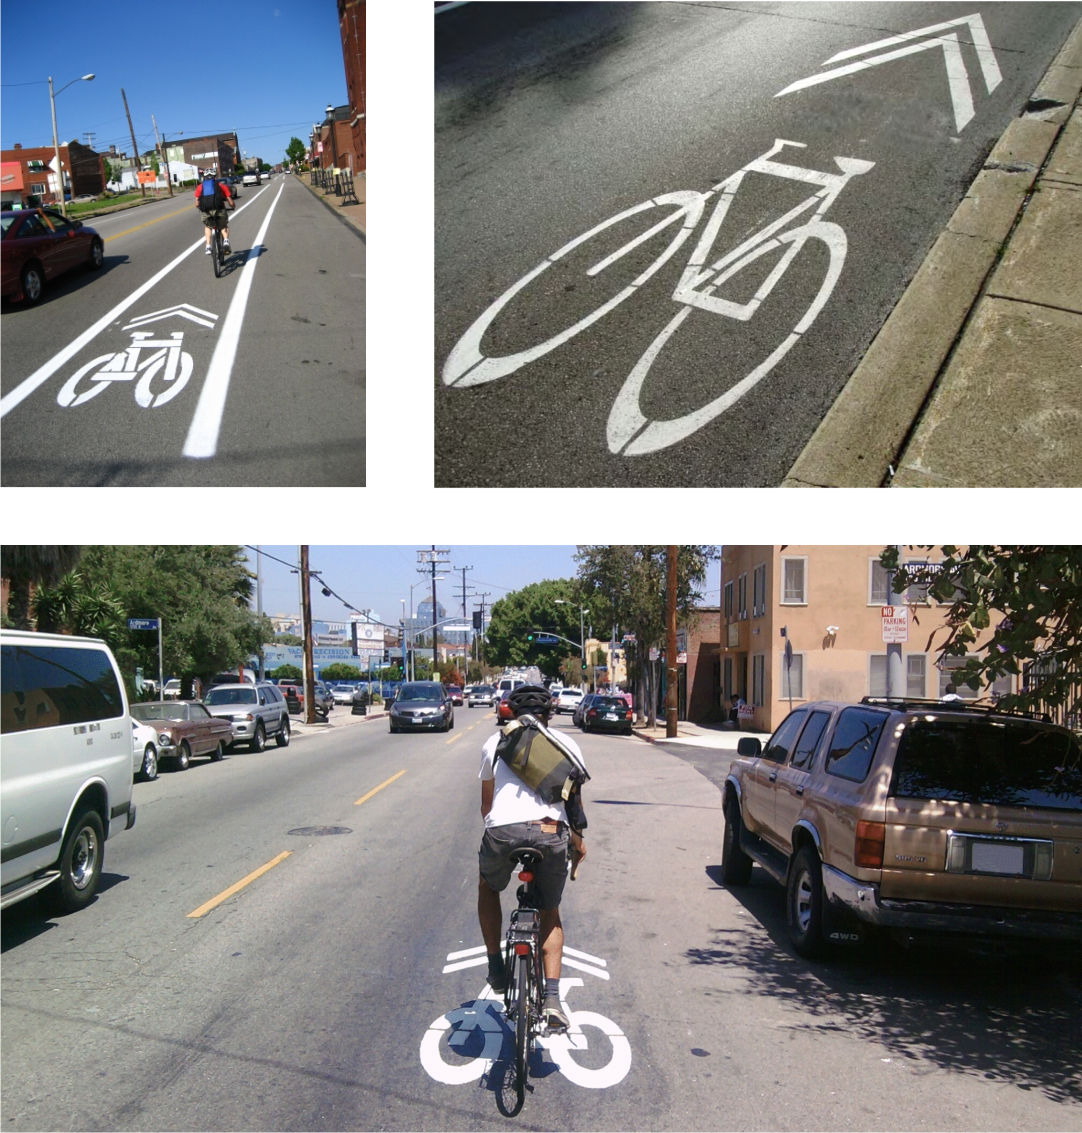 Photographs of cycling lanes